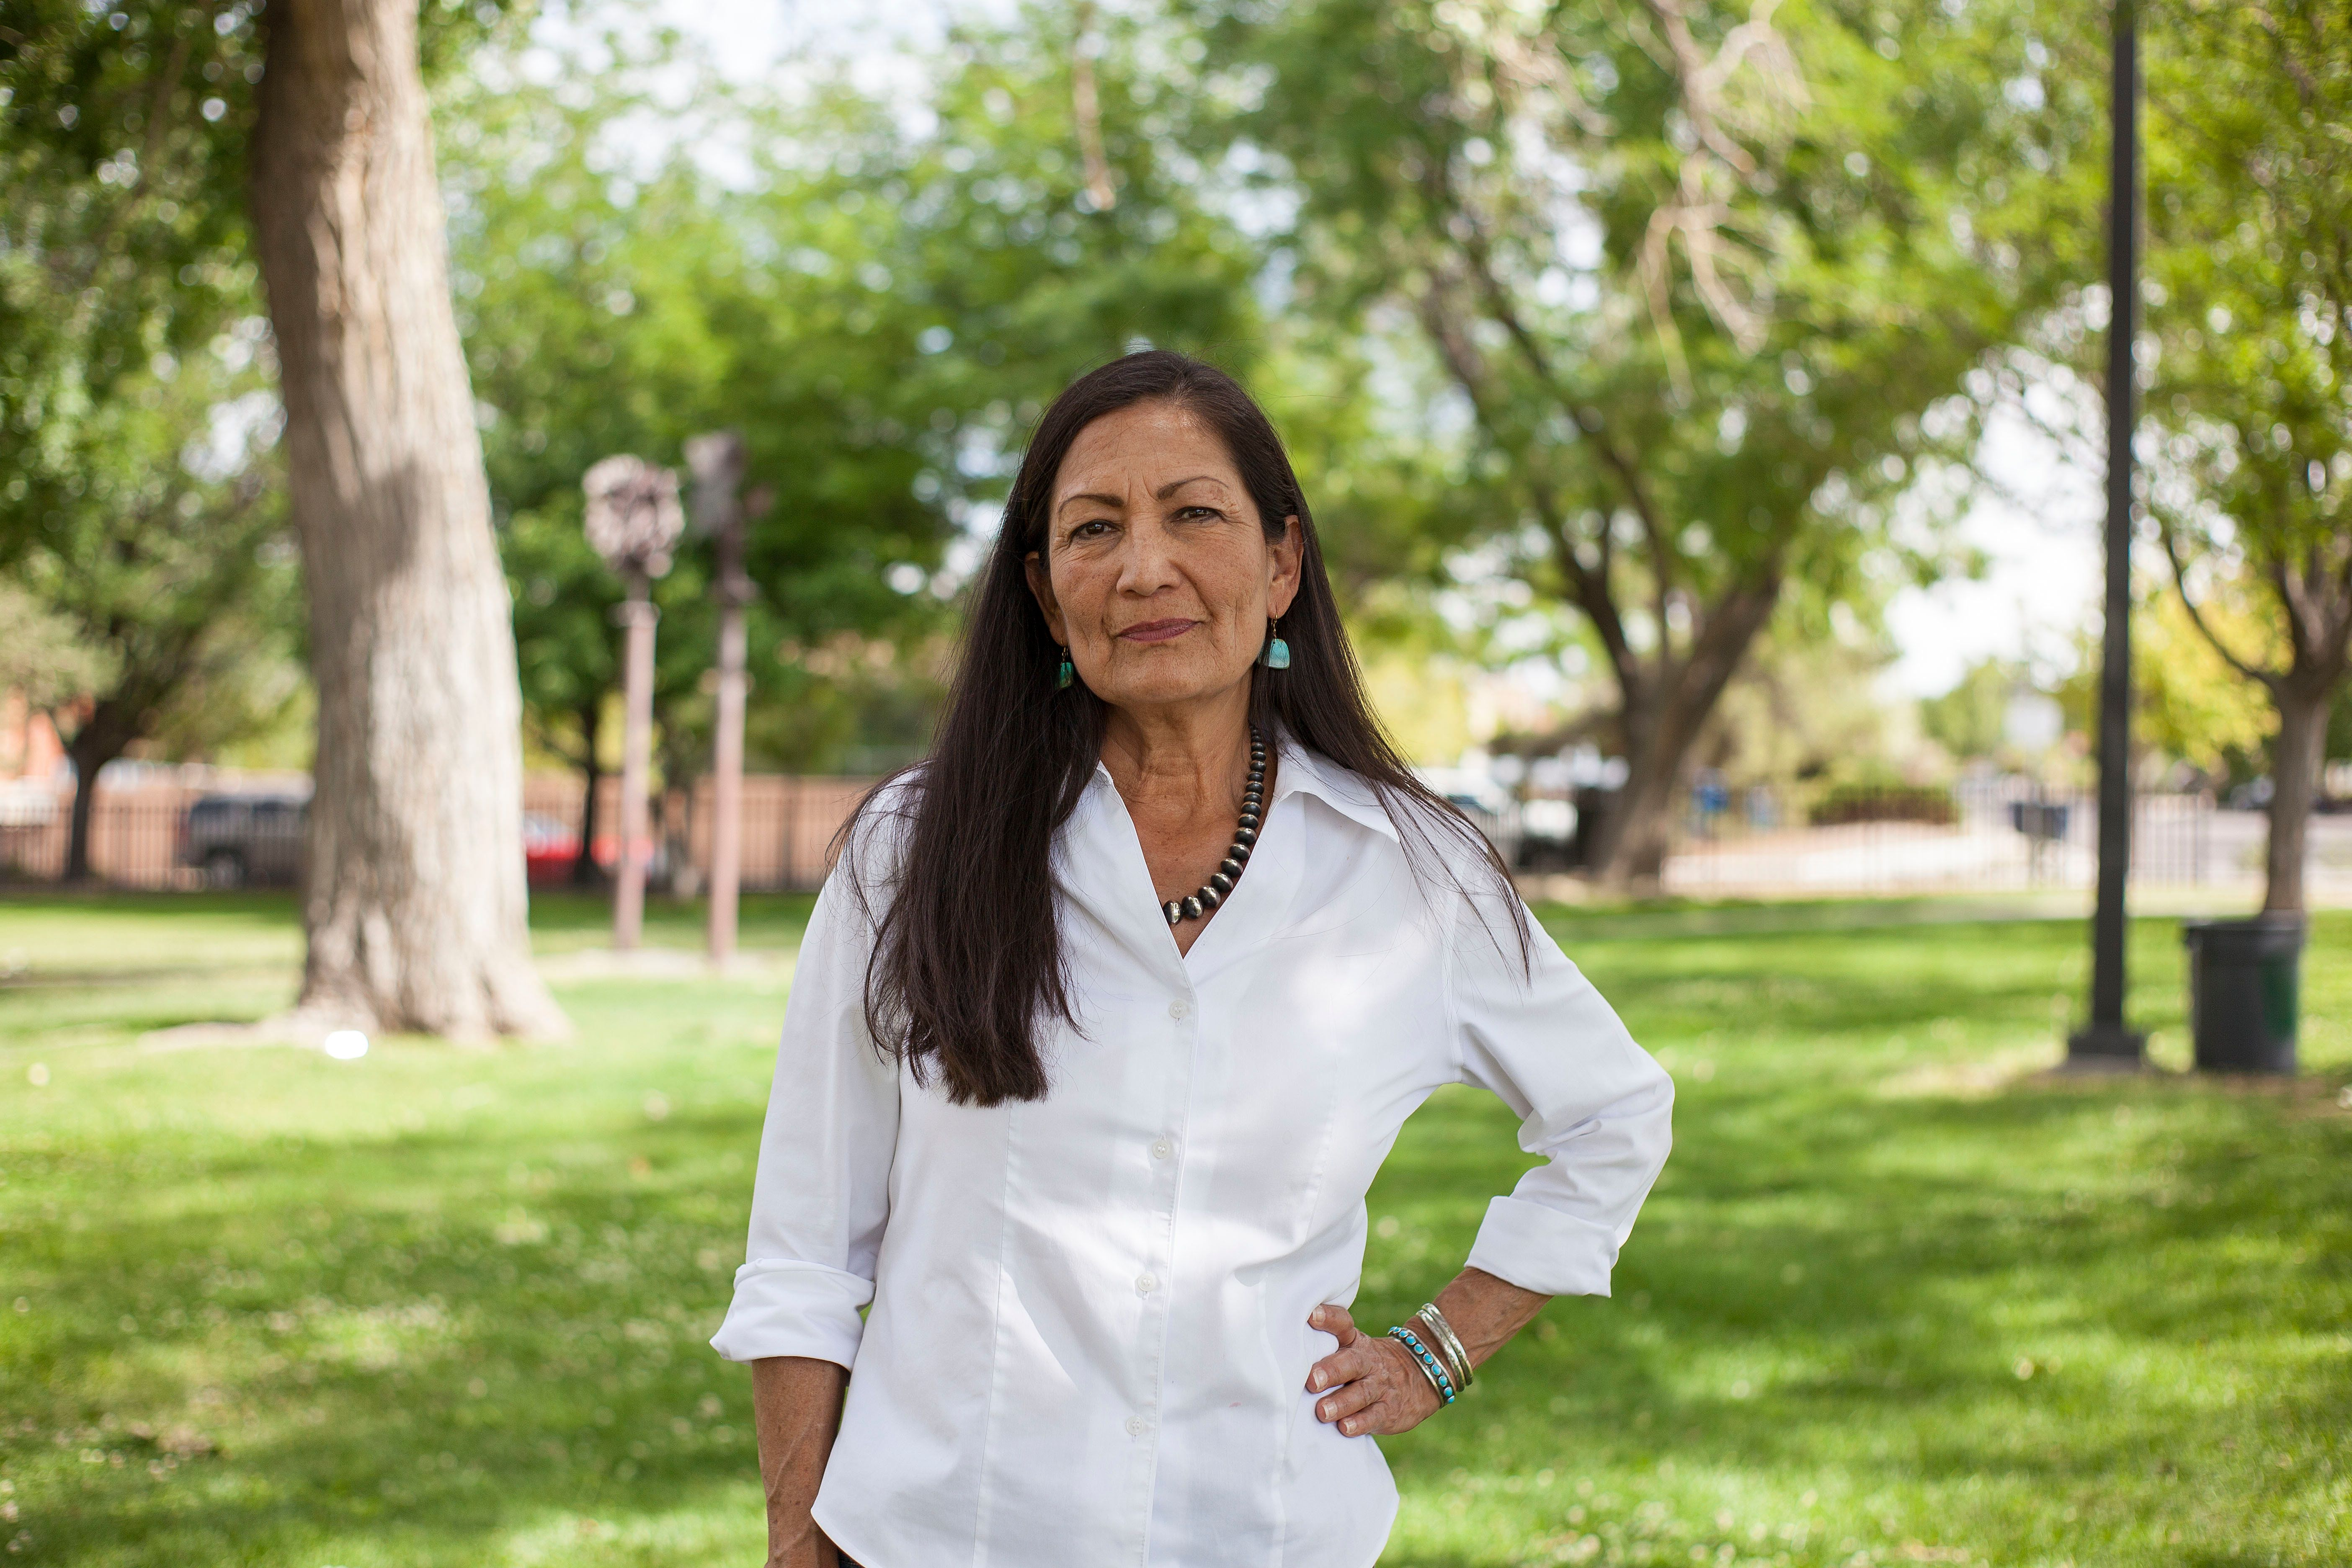 Deb Haaland poses for a portrait during the Democratic Primary elections in a Nob Hill Neighborhood in Albuquerque, New Mexico Tuesday afternoon June 5, 2018. New Mexico Voters will narrow the field in two competitive congressional races, including one in a district along the Mexico border involving a GOP-held seat that Democrats have long targeted. (AP Photo/Juan Labreche)